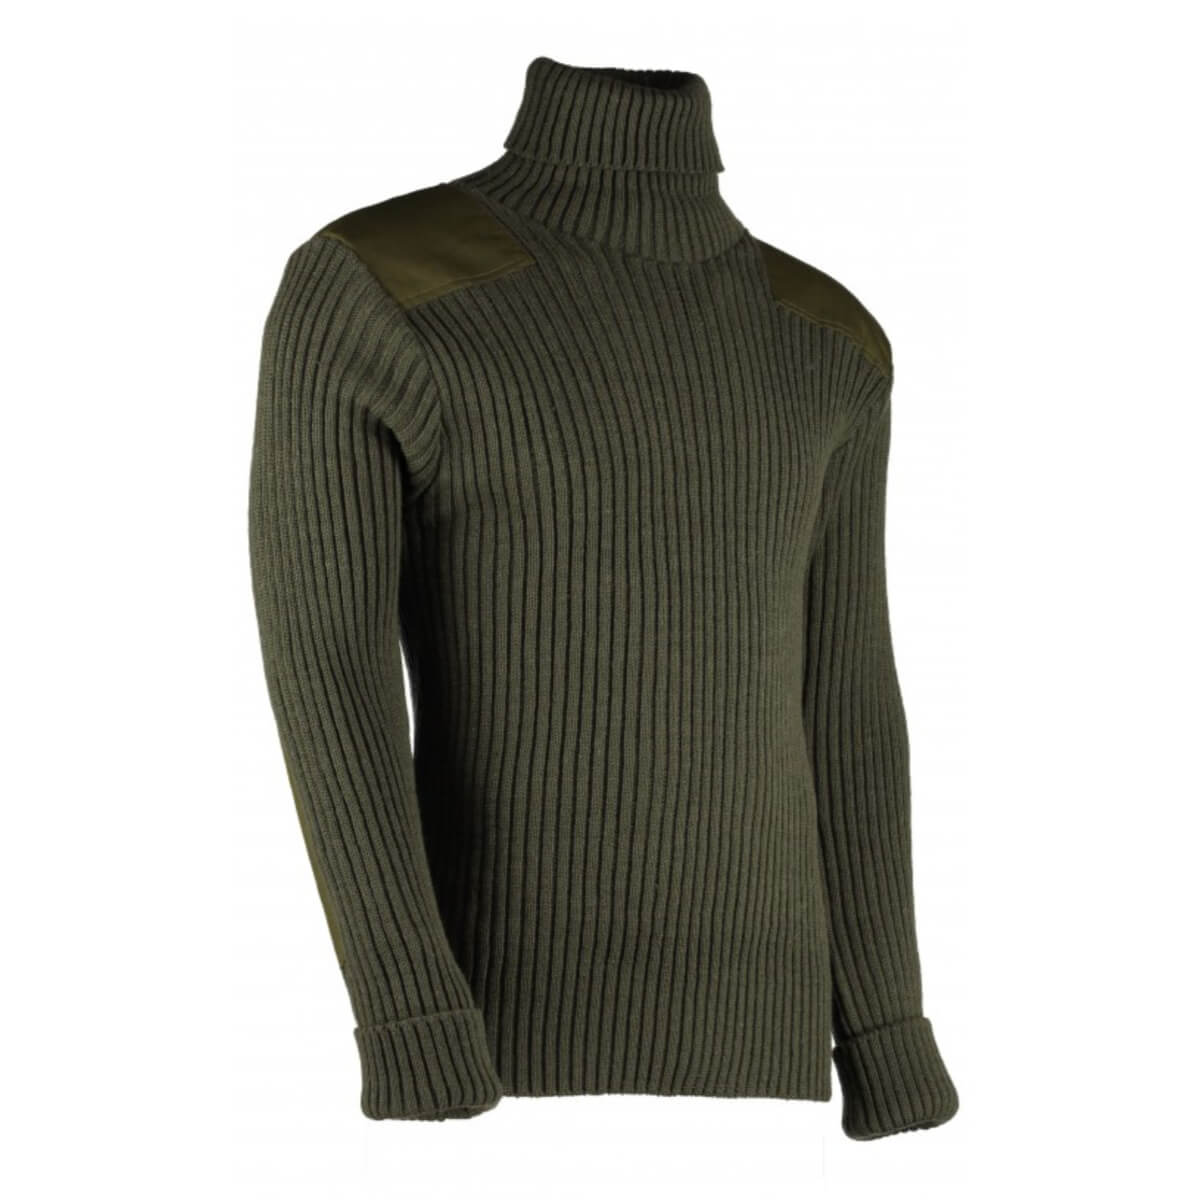 Chatham Woolly Pully Roll Neck Sweater